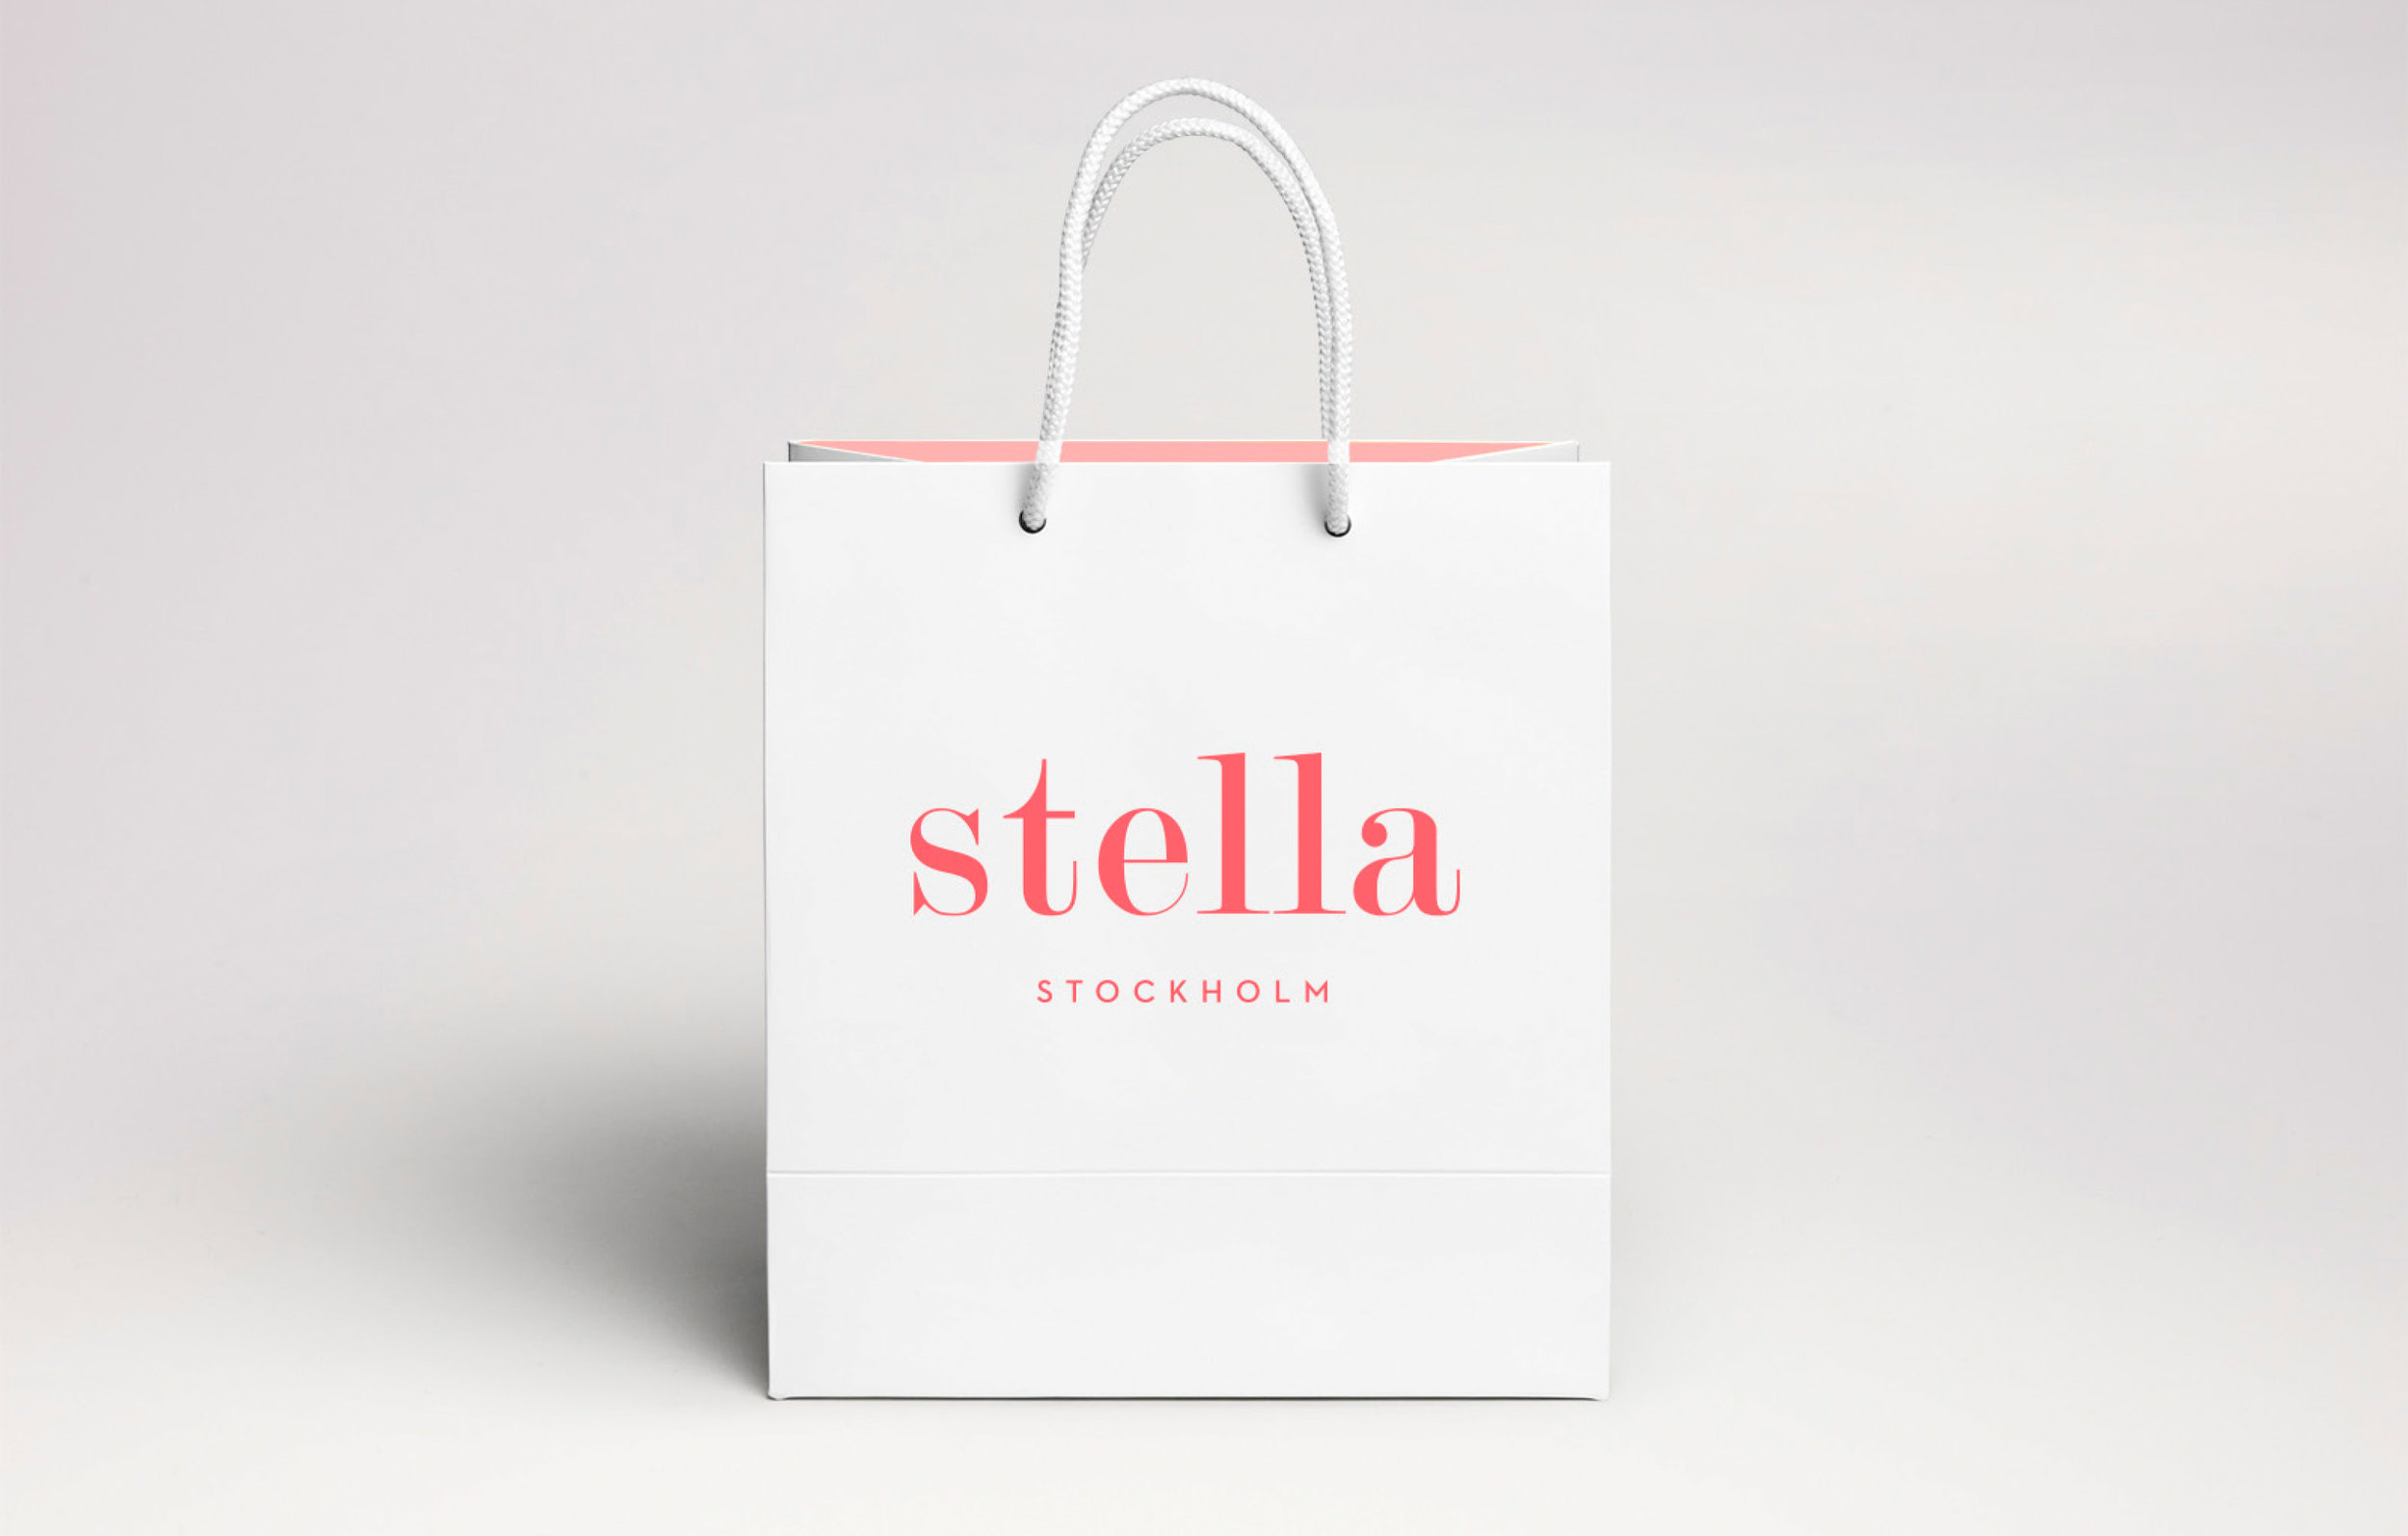 Stella Stockholm - brand identity, store materials.